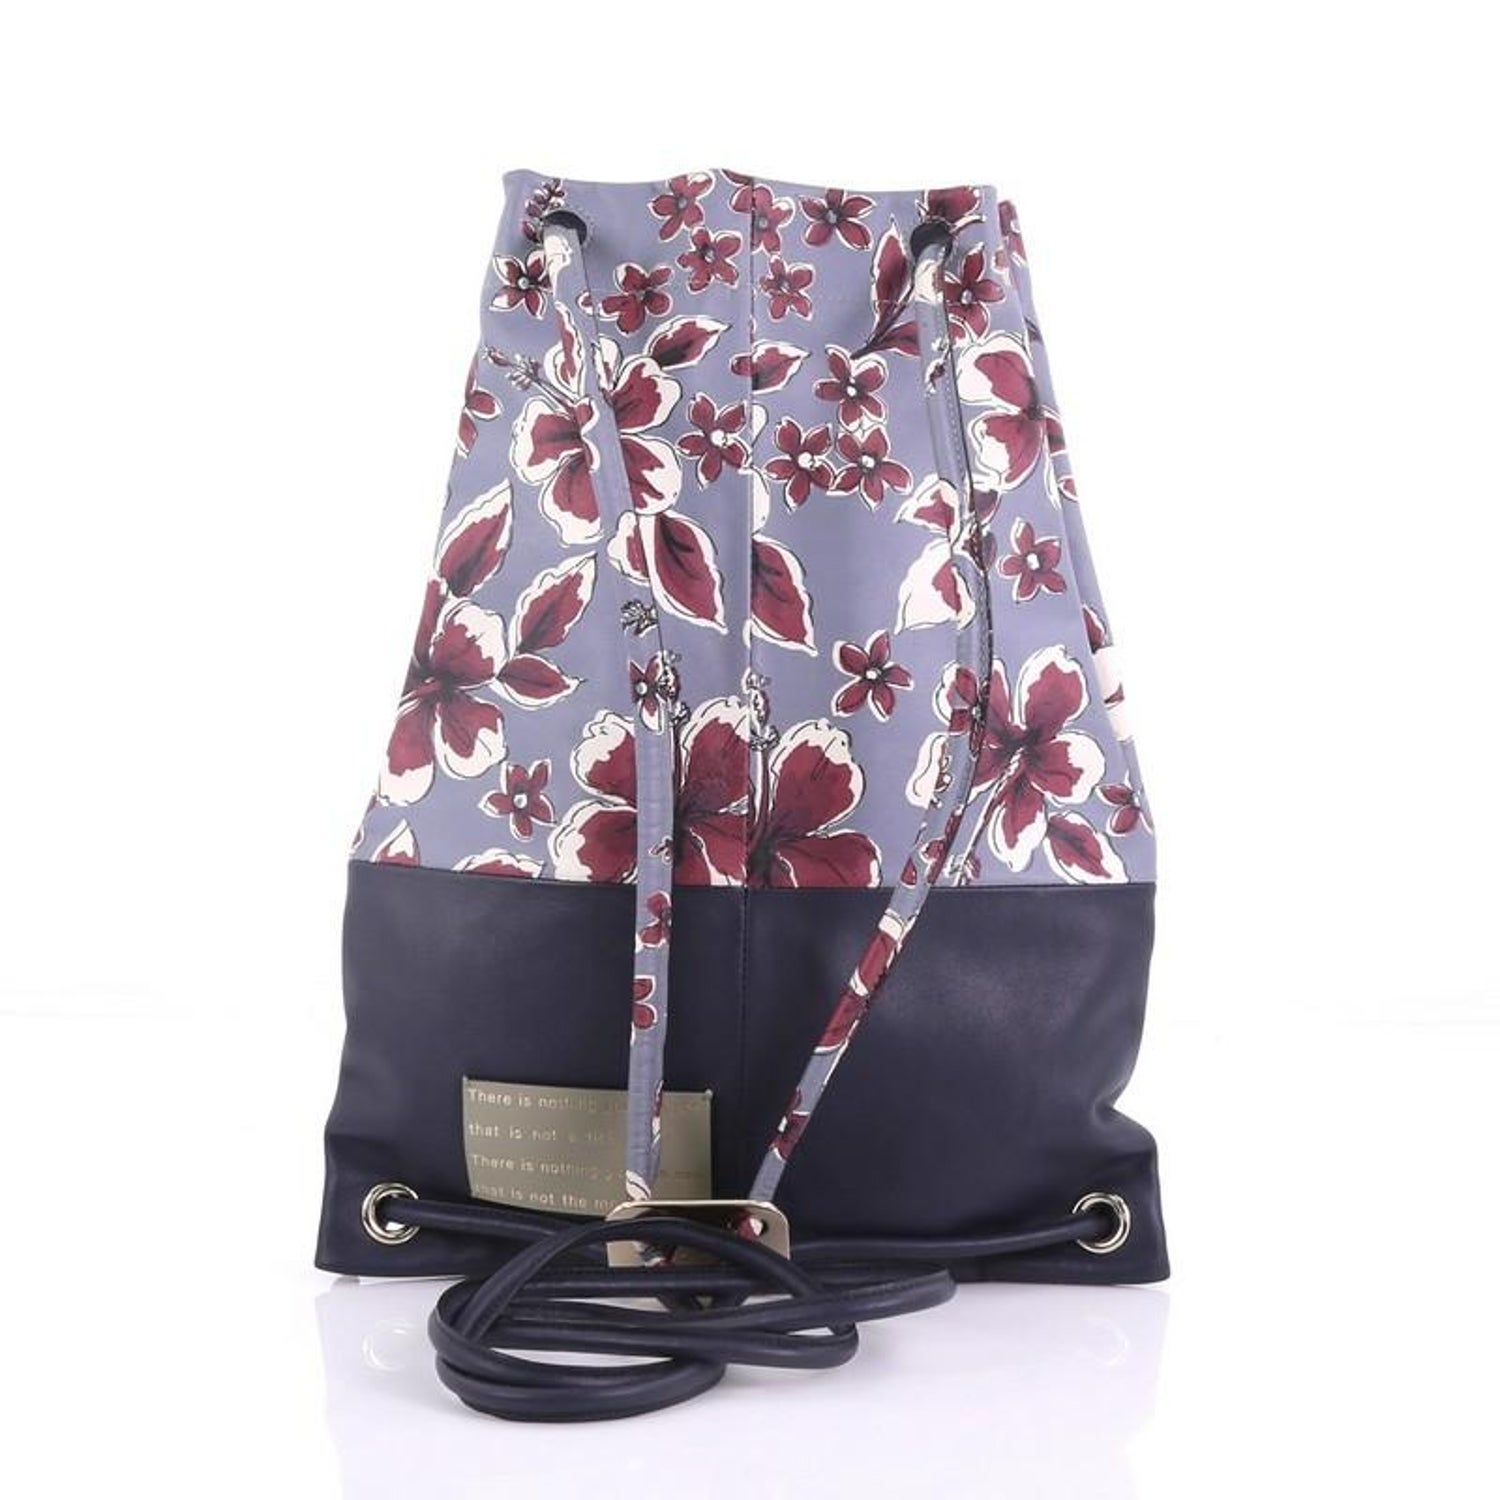 acc3df8b14f3 Valentino Drawstring Backpack Printed Leather Large For Sale at 1stdibs